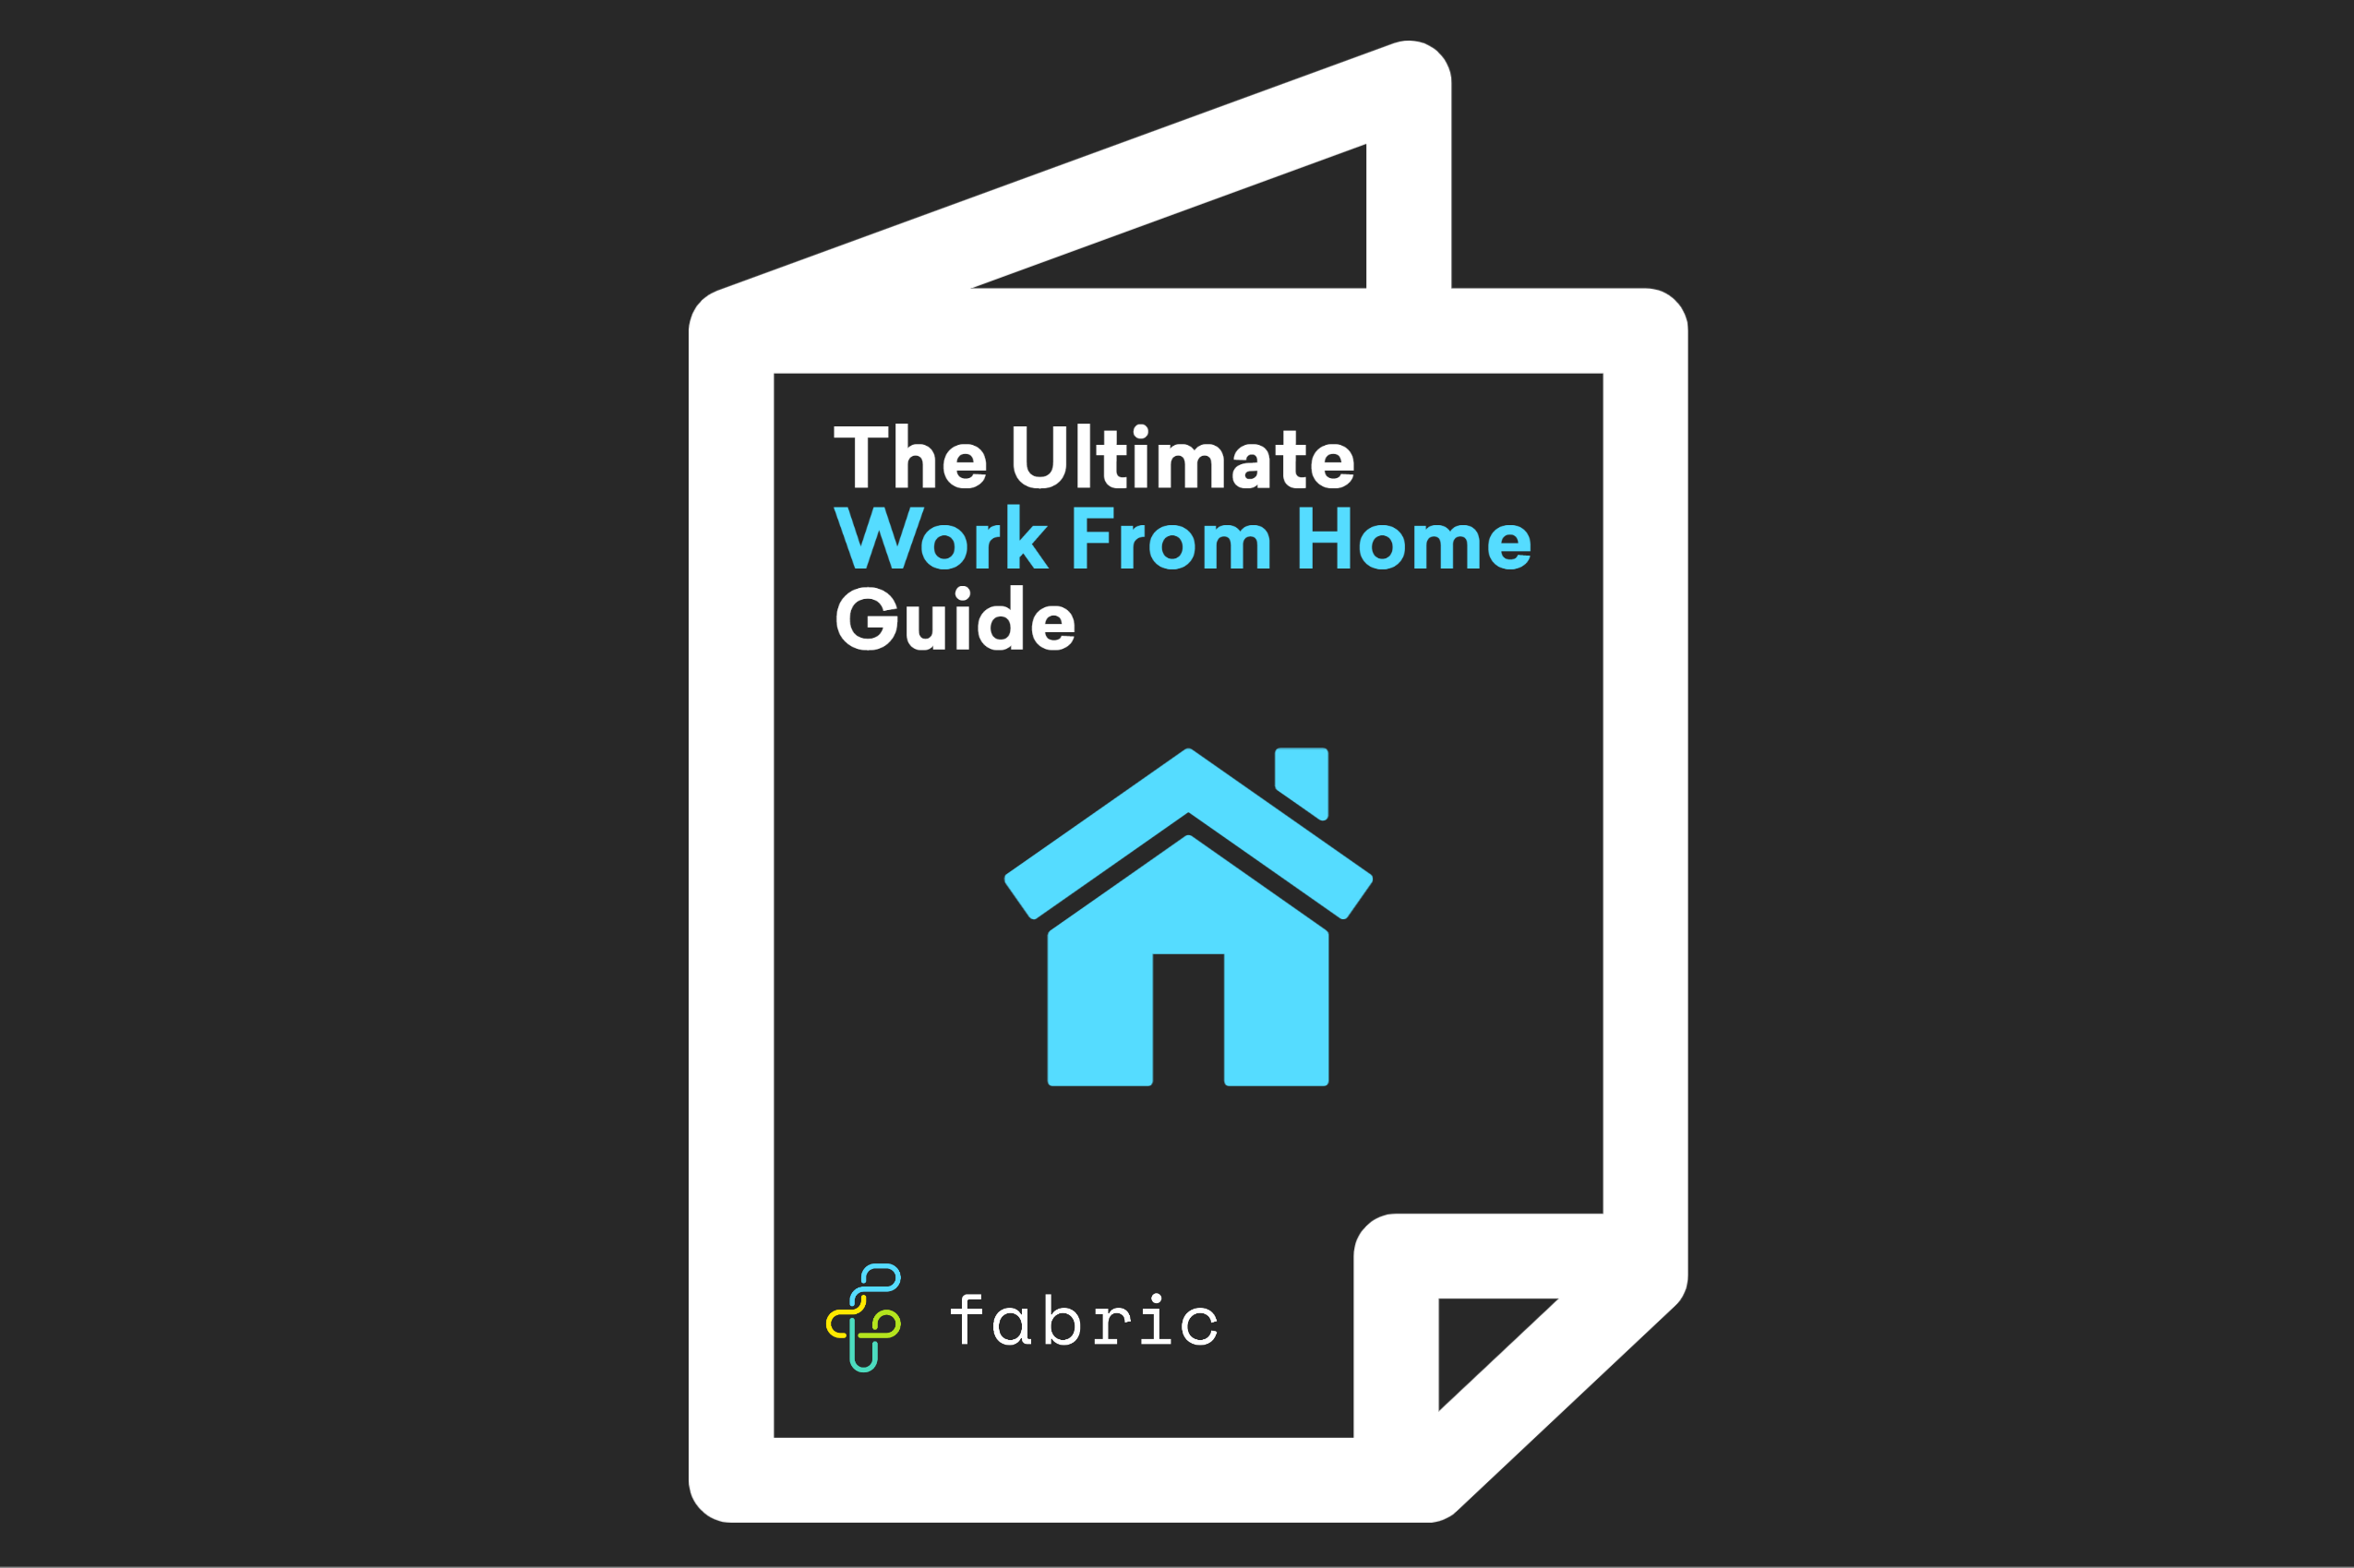 The Ultimate Work From Home Guide